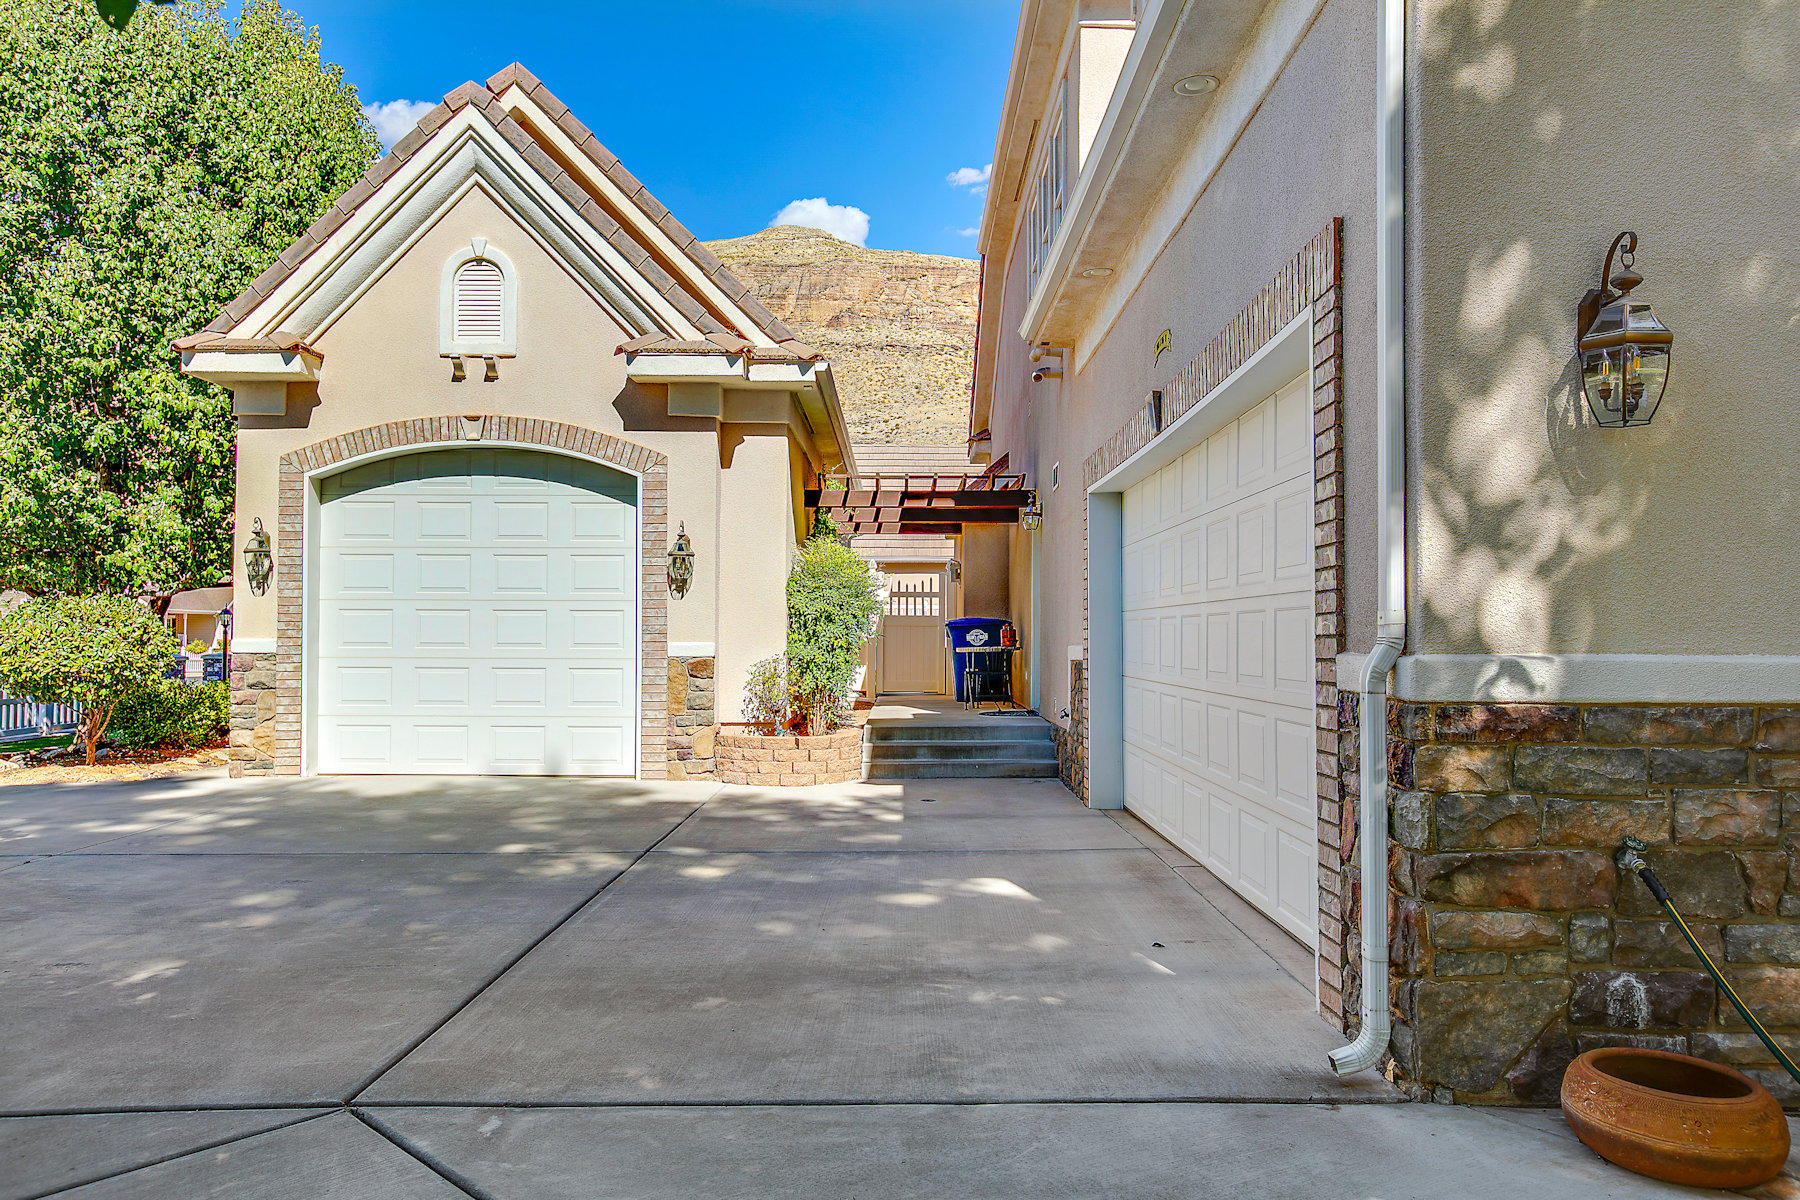 This cozy, but spacious five, potentially six, bedroom home is conveniently close to all of the amenities of life, including restaurants, movie theaters, Zion National park, lakes, & 4-wheeling red sand dunes. It has been lovingly maintained & cared for. From the park-style landscaping to the gourmet kitchen to bathrooms this lovely home is upscale urban at its best. Imagine yourself as the next